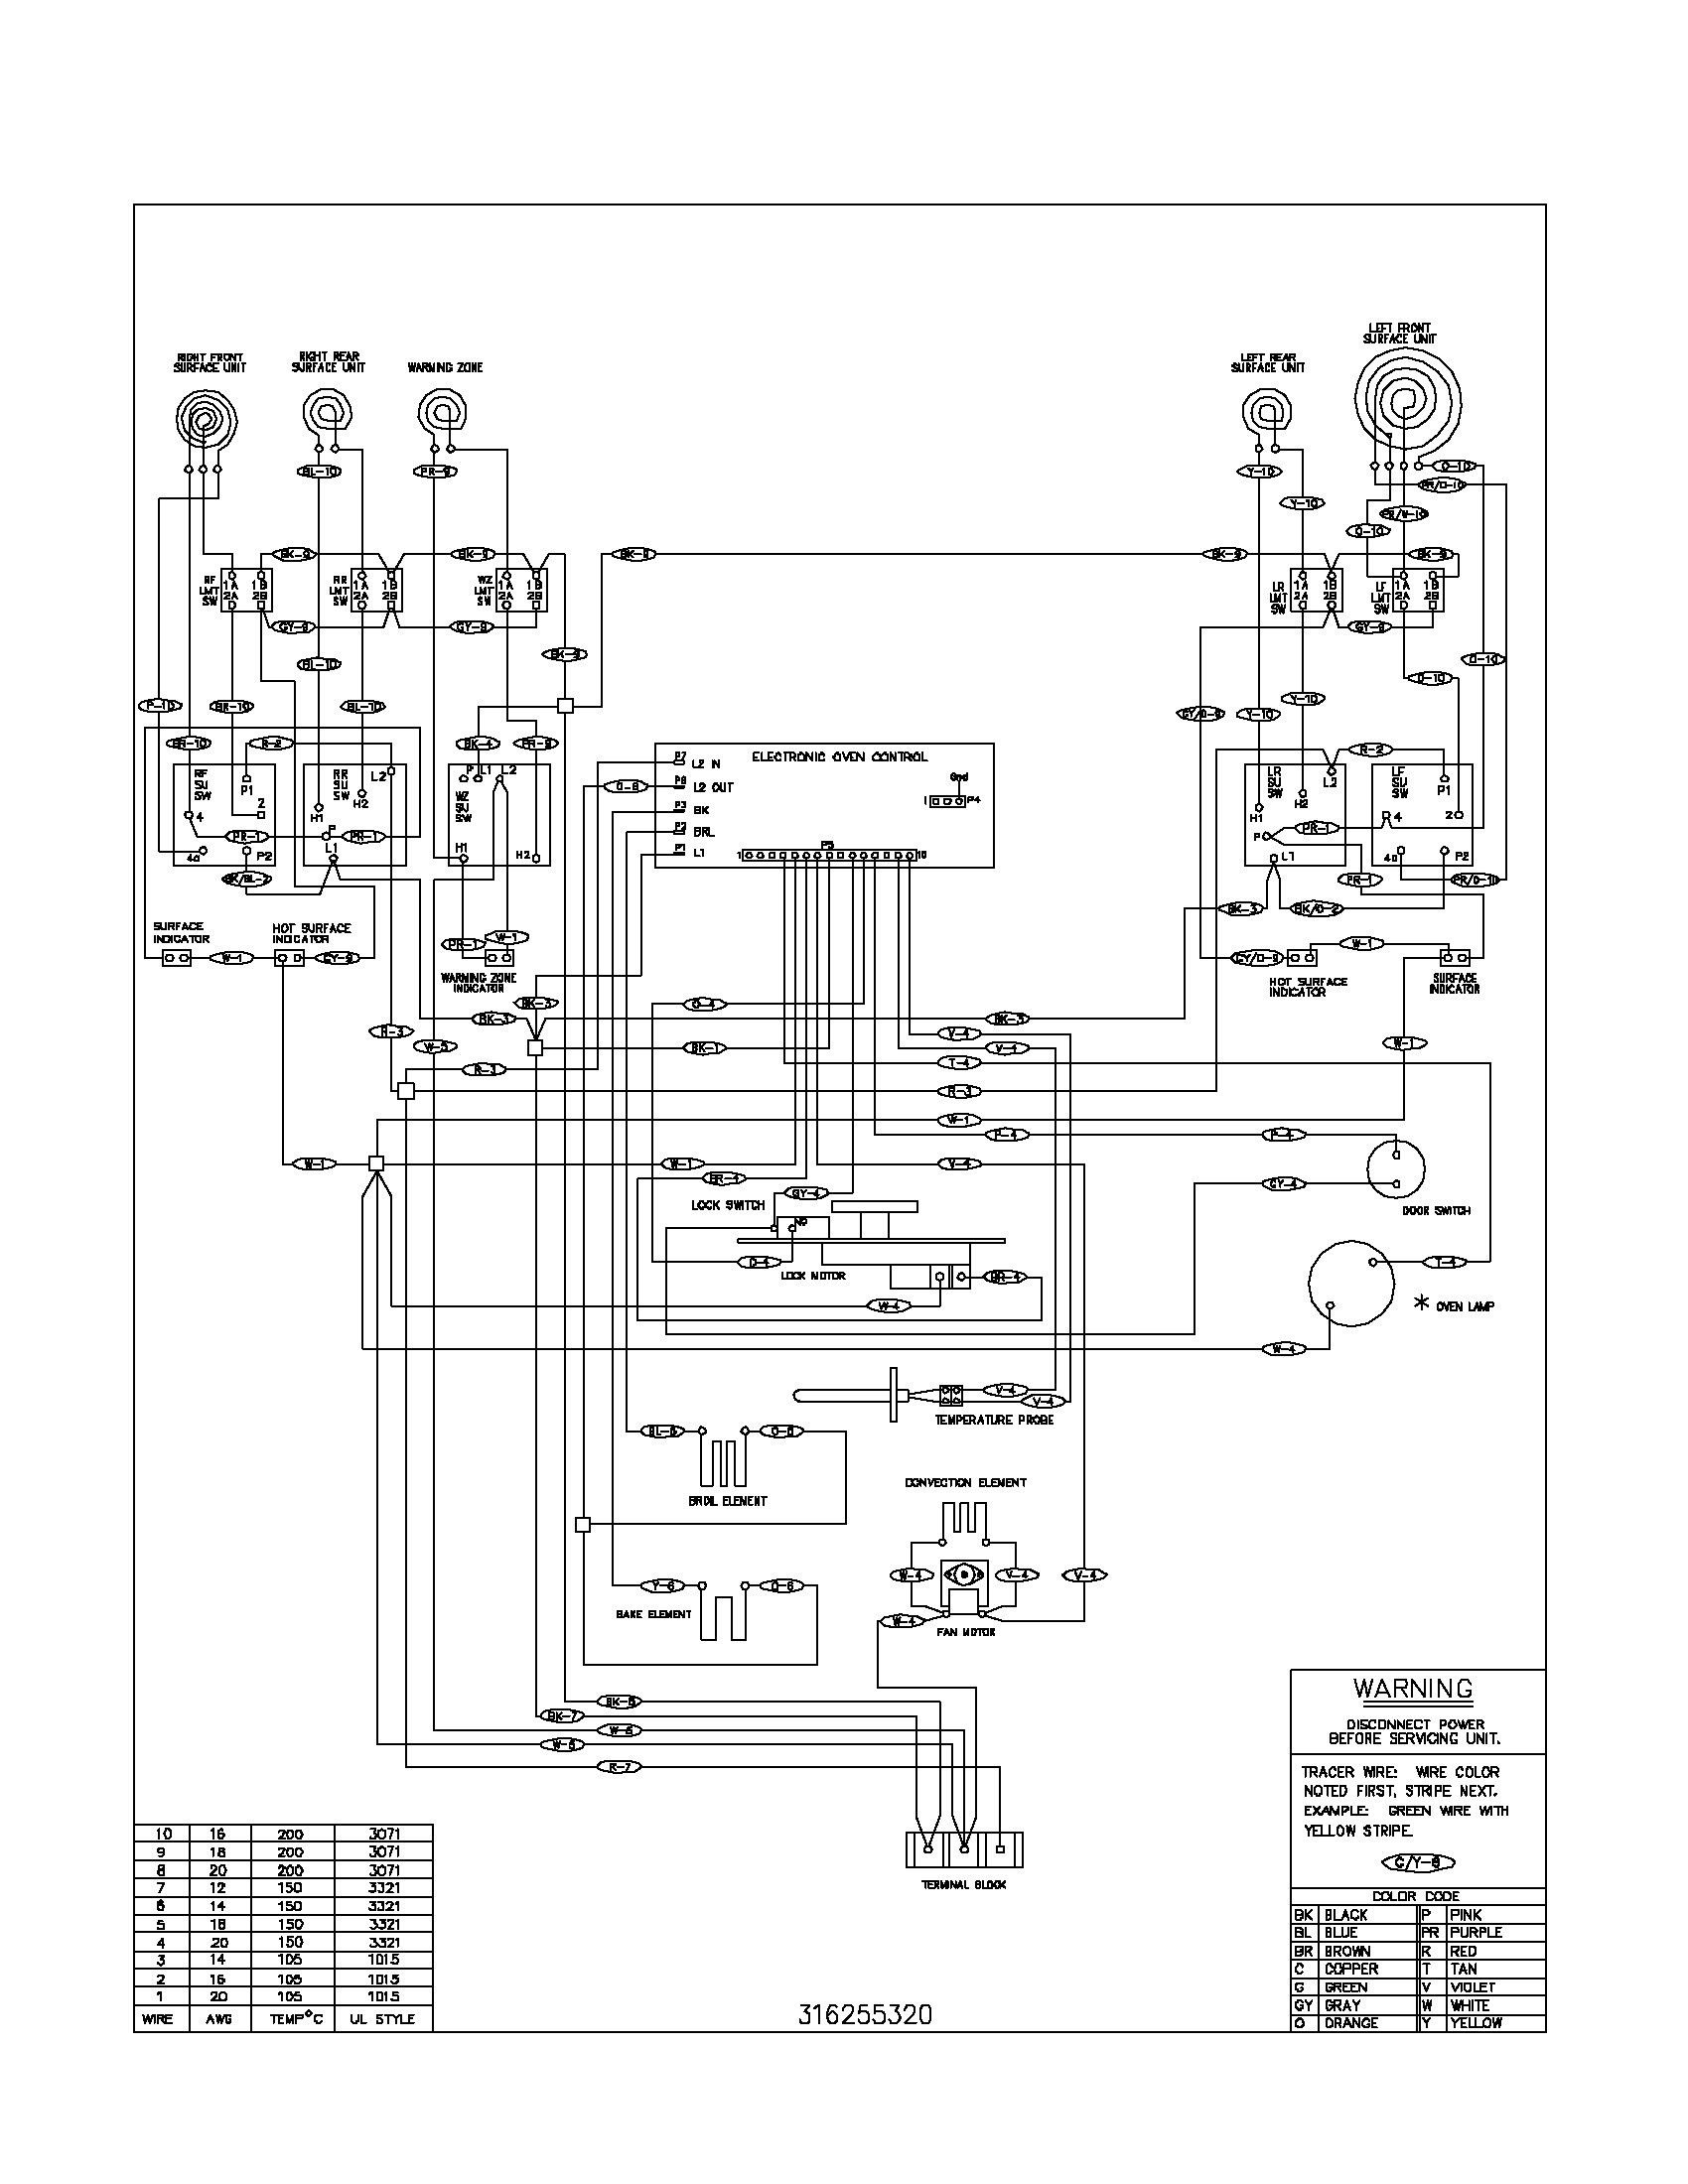 24 Wiring Diagram For Electric Stove Bookingritzcarlton Info Electric Stove Electrical Diagram Electrical Wiring Diagram